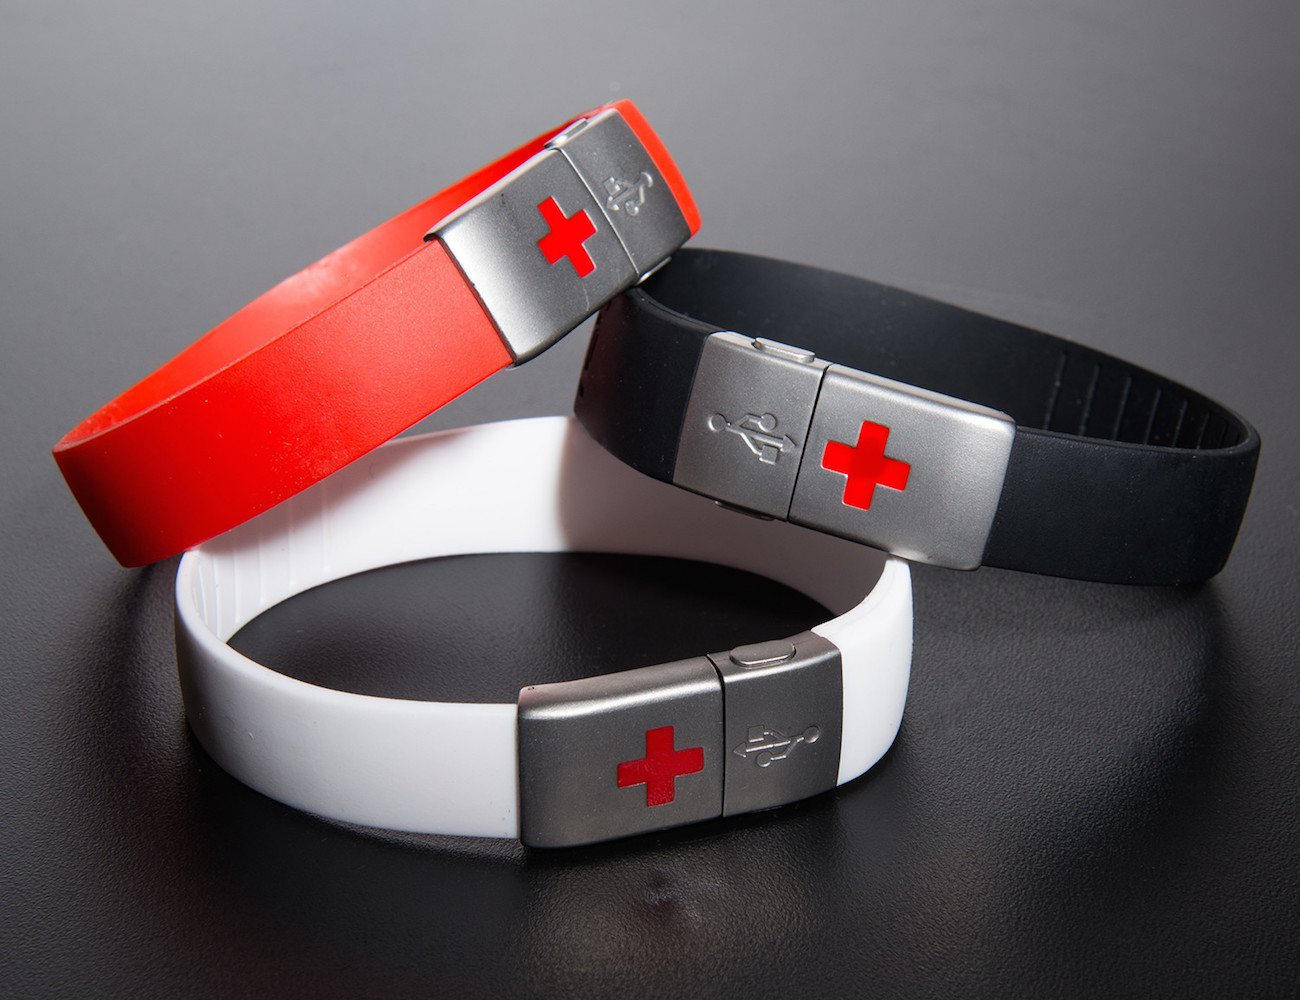 EPIC-id+USB+Emergency+ID+Wristband